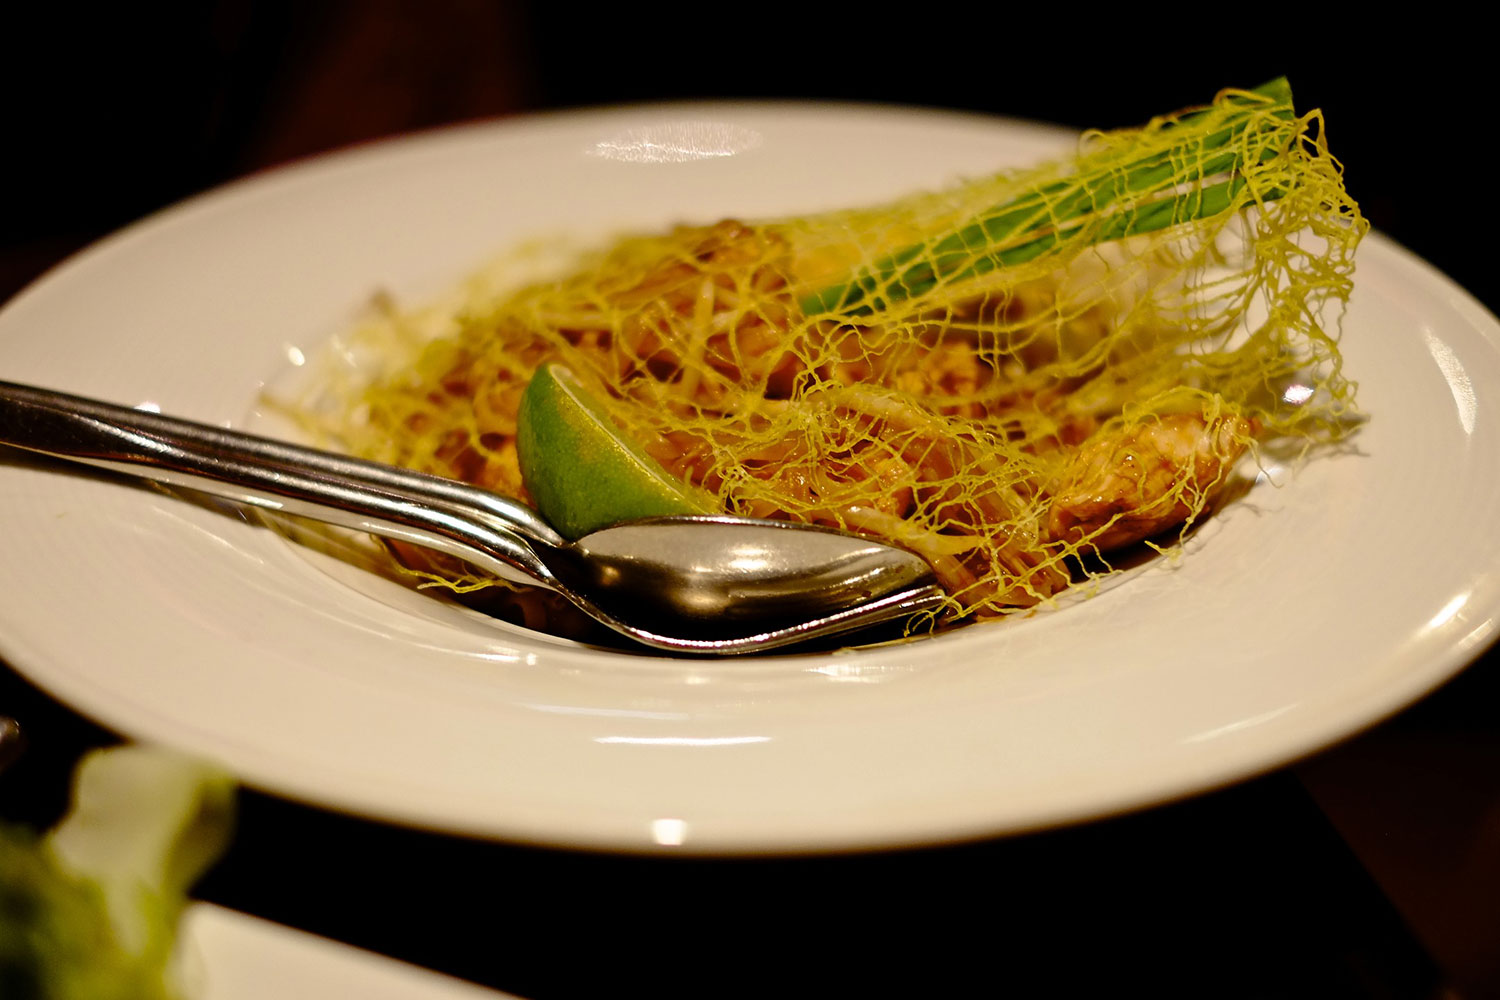 Pad Thai with intricate egg netting